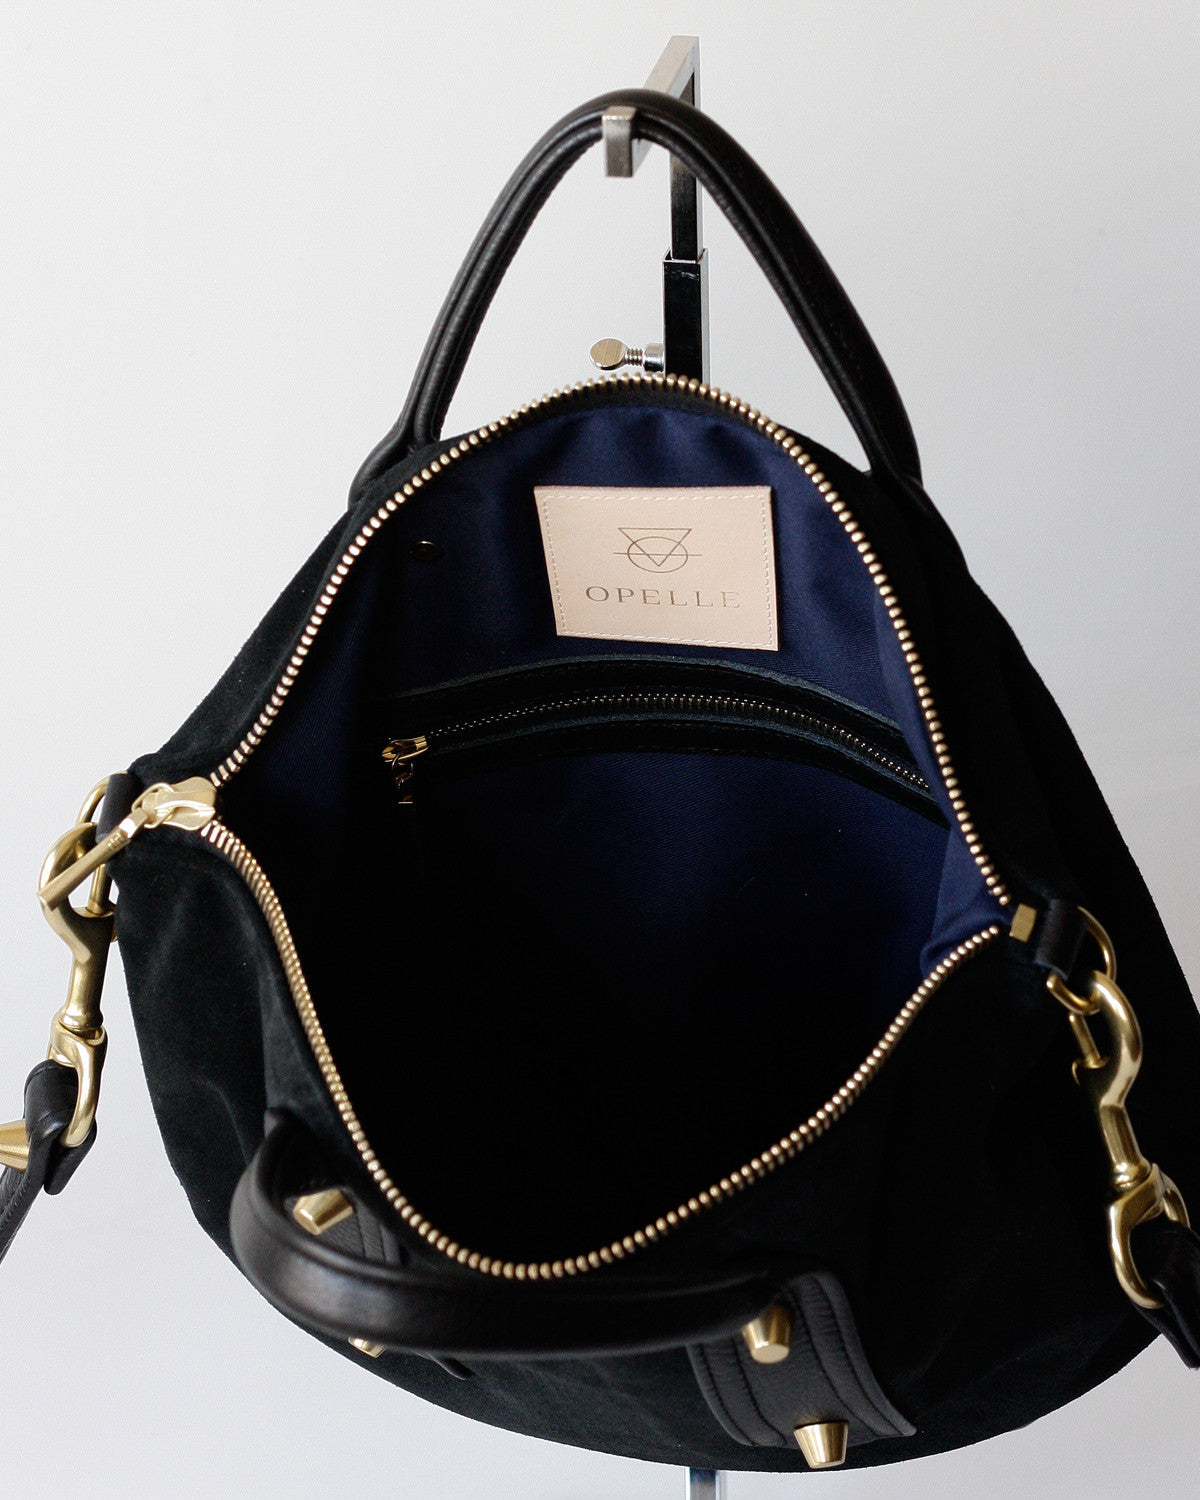 mVanda - Opelle bag Permanent Collection - Opelle leather handbag handcrafted leather bag toronto Canada